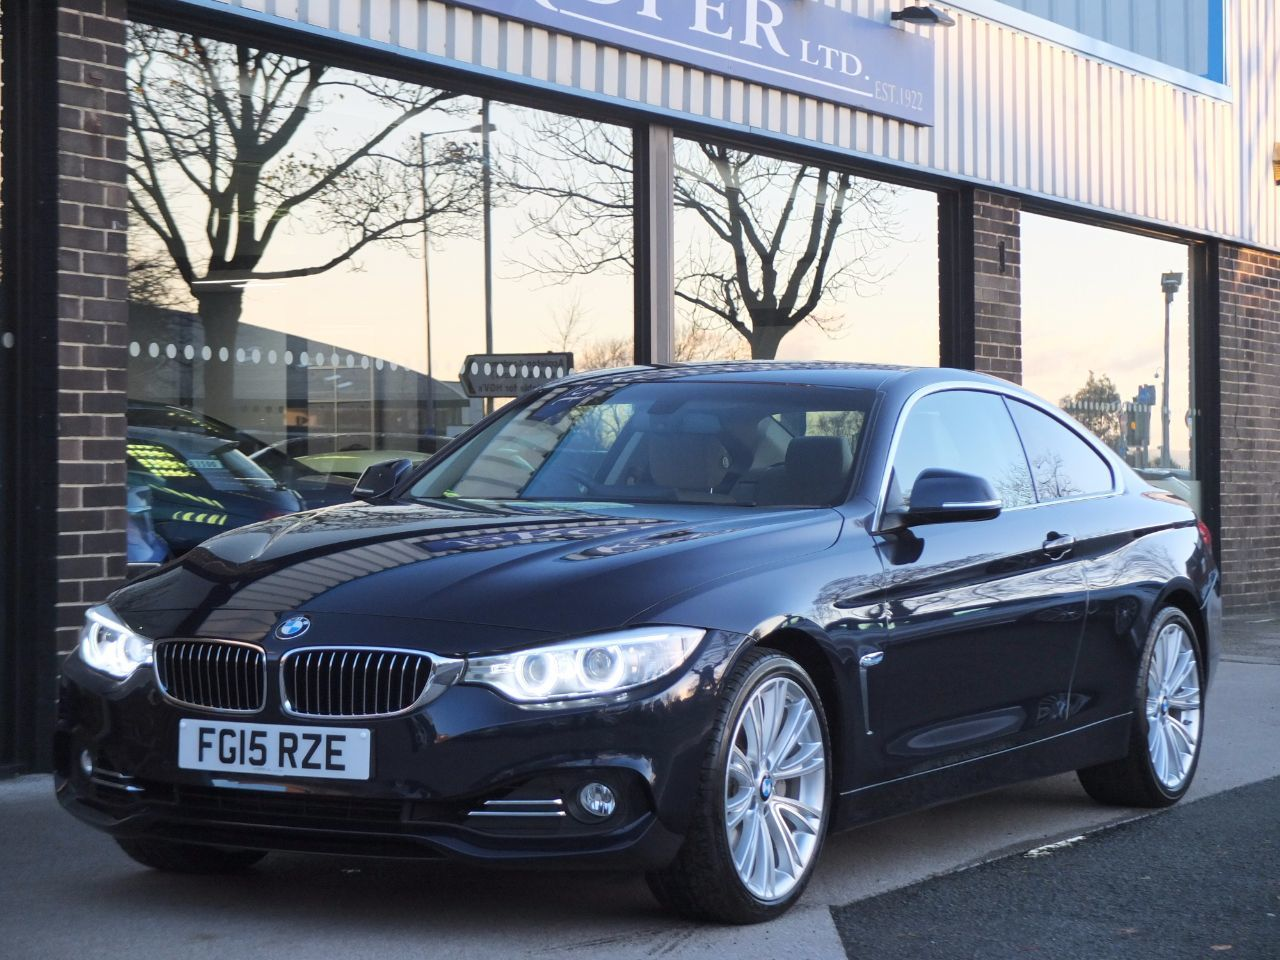 BMW 4 Series 3.0 435i Coupe Luxury Auto 306ps Coupe Petrol Imperial Blue XirallicBMW 4 Series 3.0 435i Coupe Luxury Auto 306ps Coupe Petrol Imperial Blue Xirallic at fa Roper Ltd Bradford